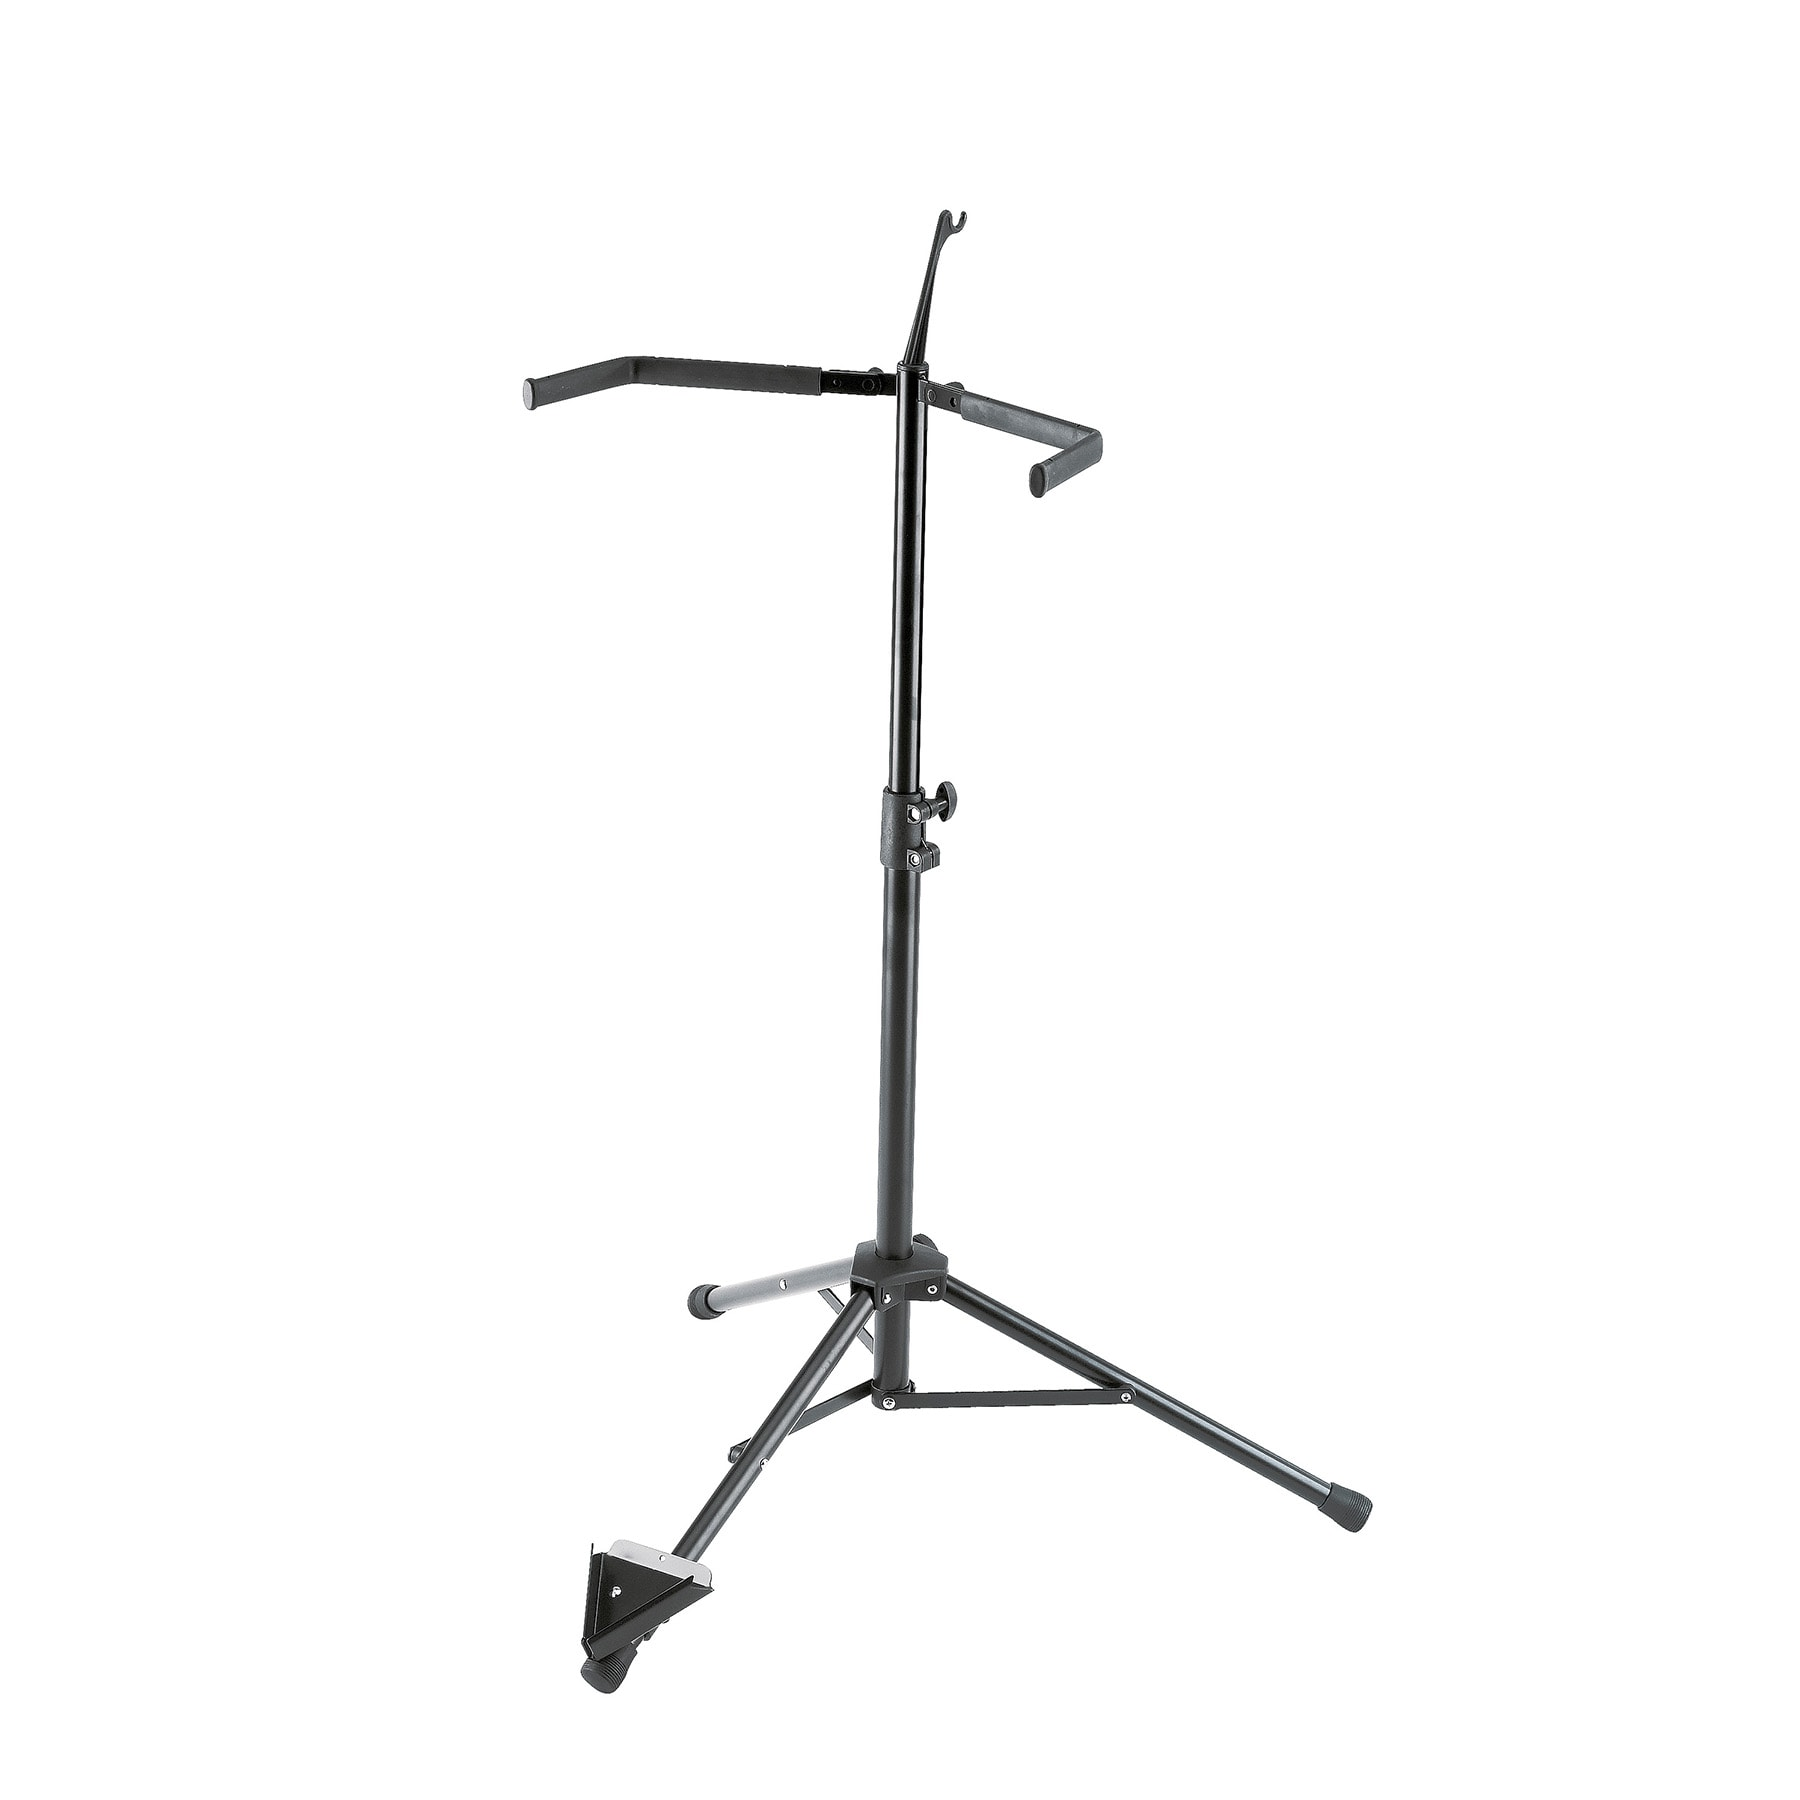 KM141 - Double bass stand